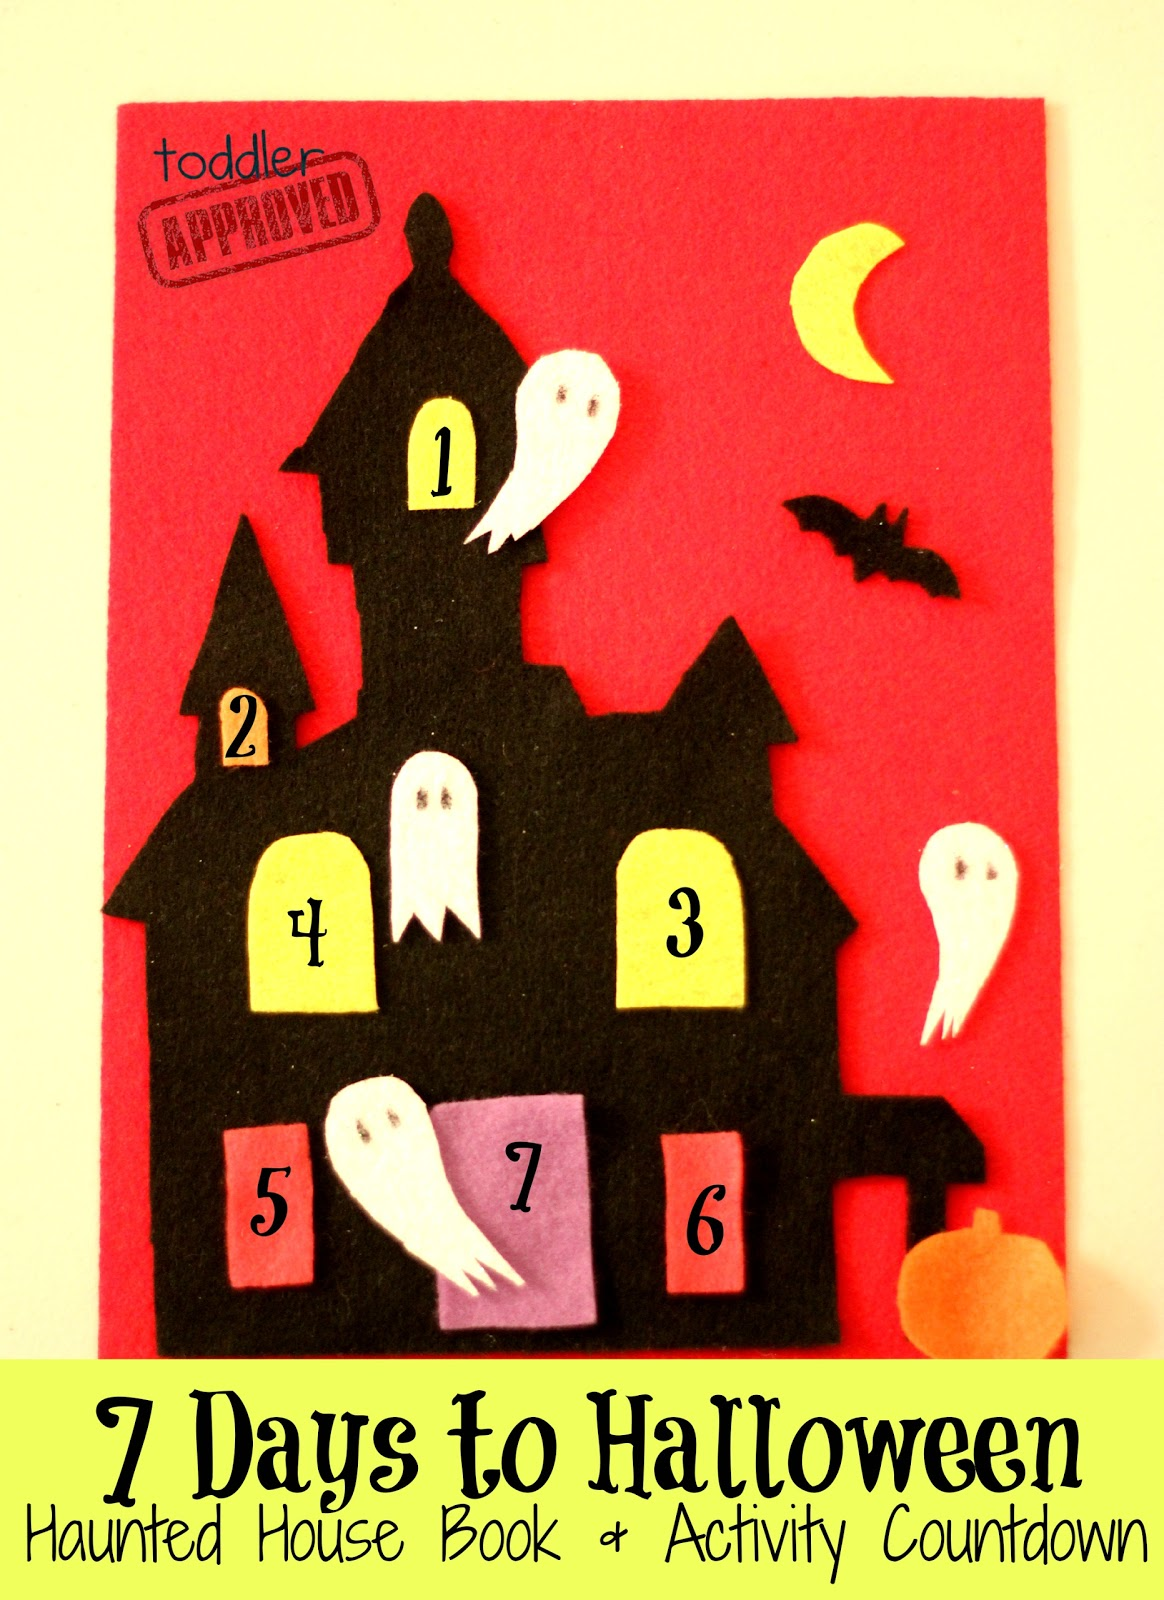 Toddler Approved!: 7 Days to Halloween Haunted House Book ...